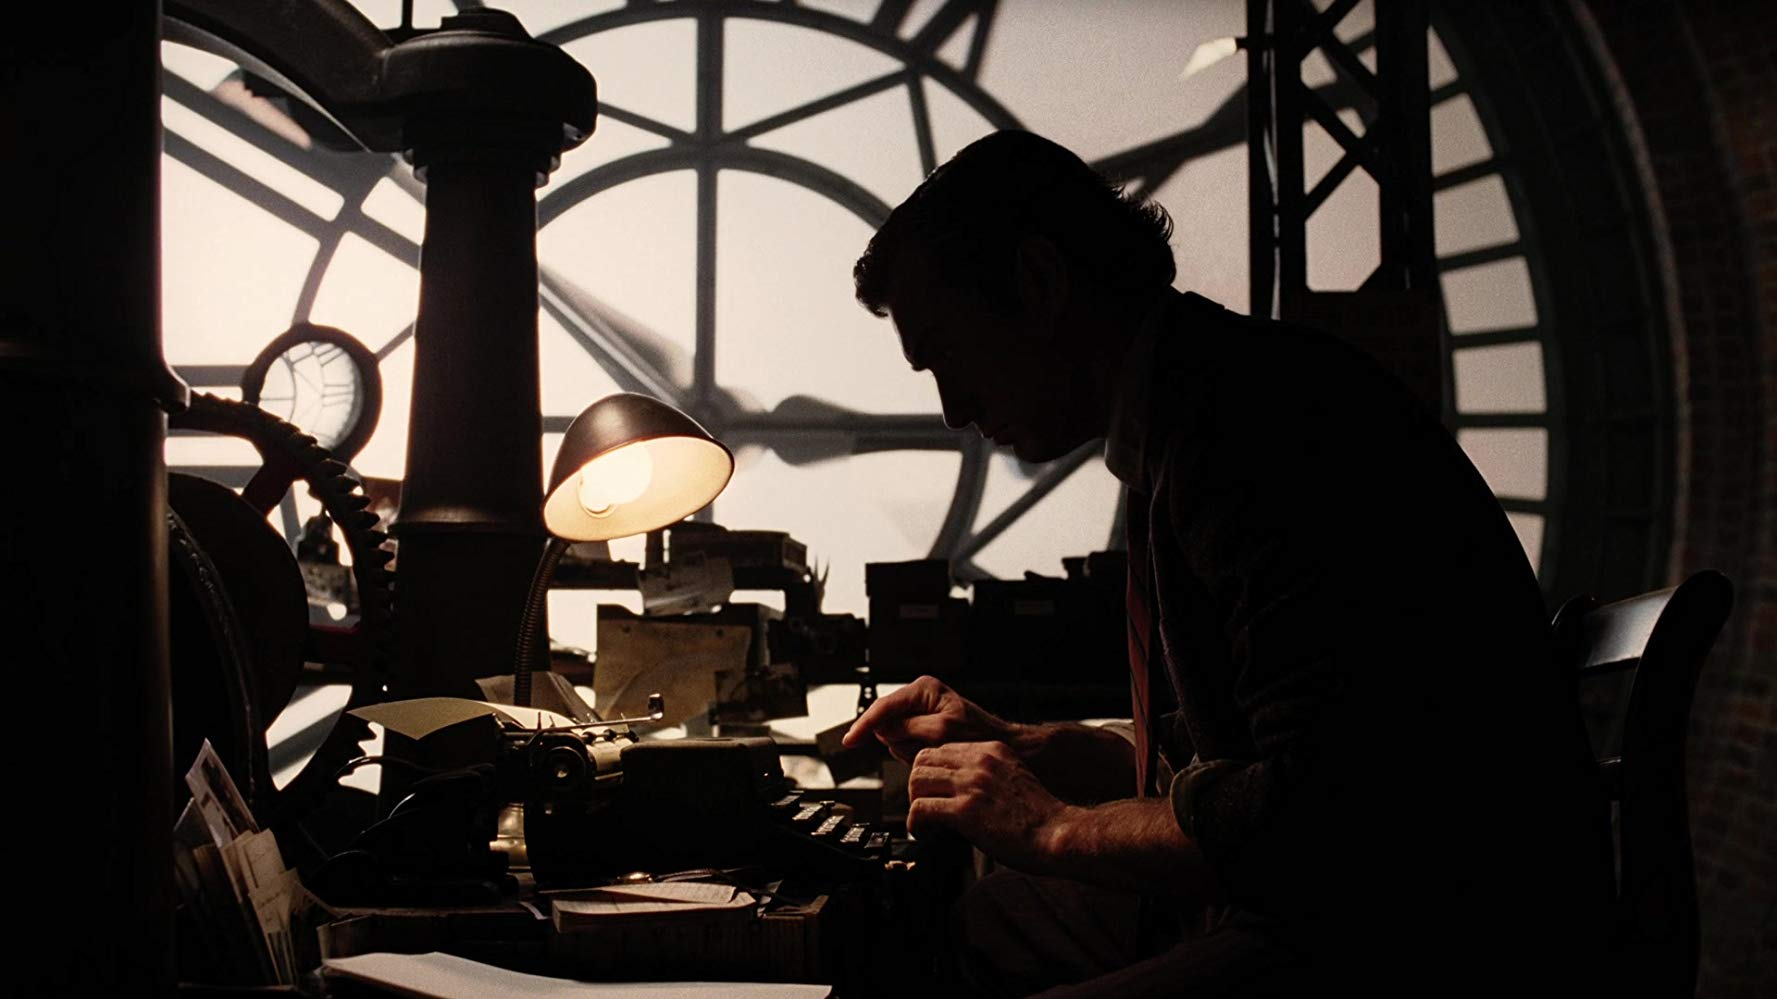 Lemony Snicket (Jude law) sits writing in his clocktower in Lemony Snicket's A Series of Unfortunate Events (2004)